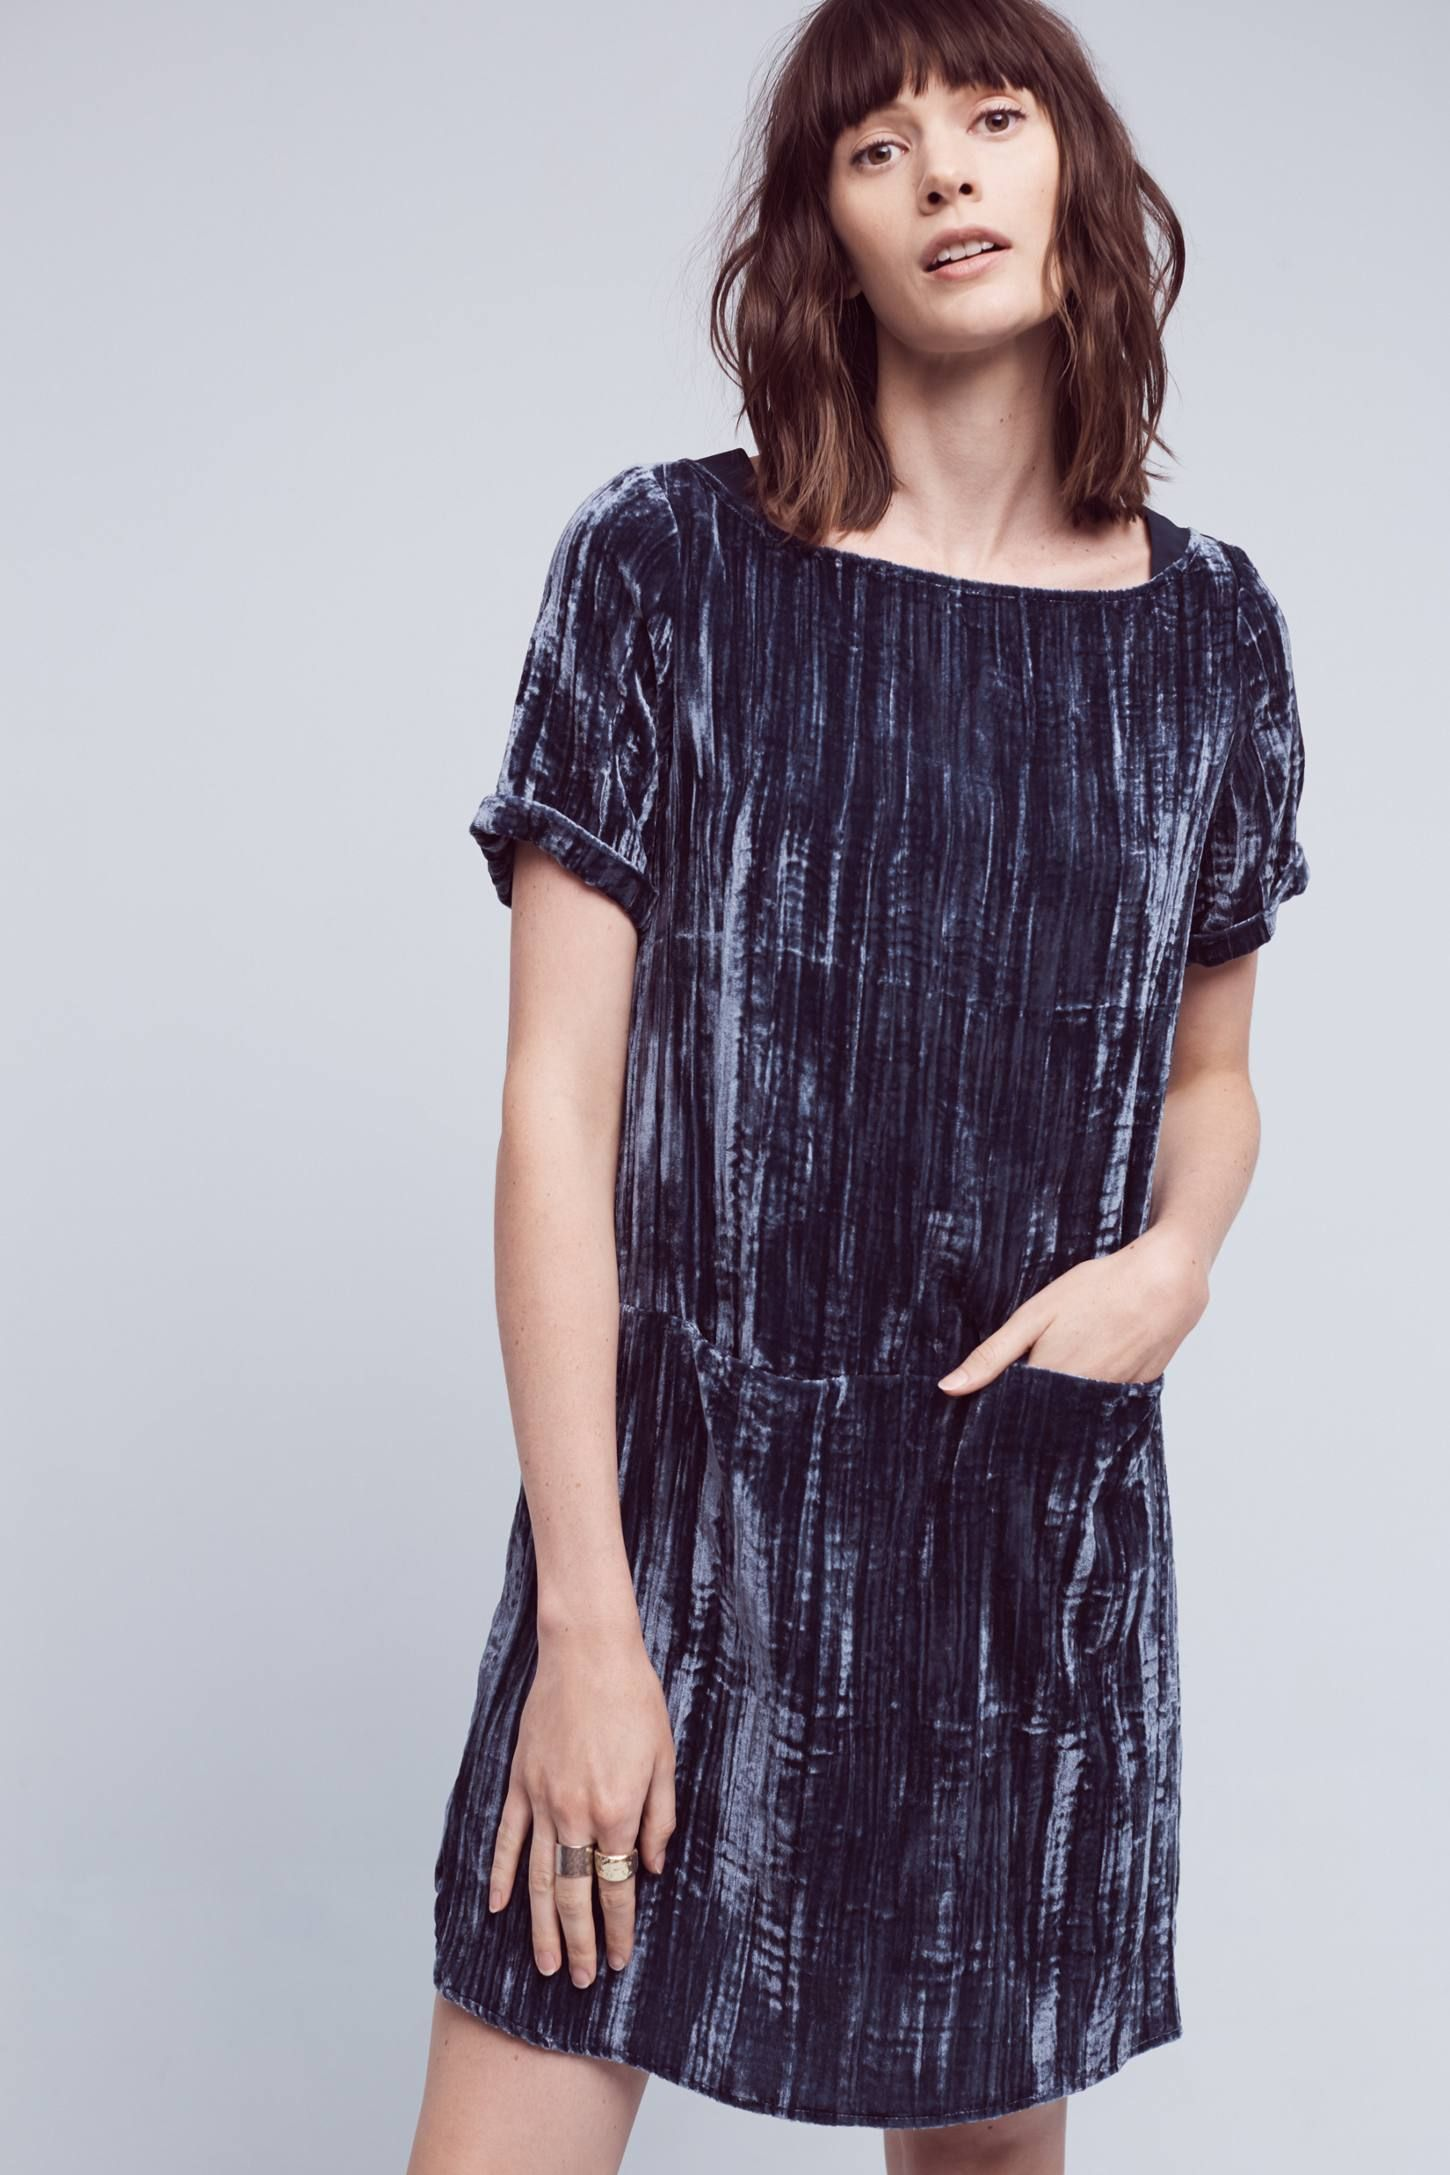 14d3df0e29ac Shop the Crinkled Velvet Tunic and more Anthropologie at Anthropologie  today. Read customer reviews, discover product details and more.